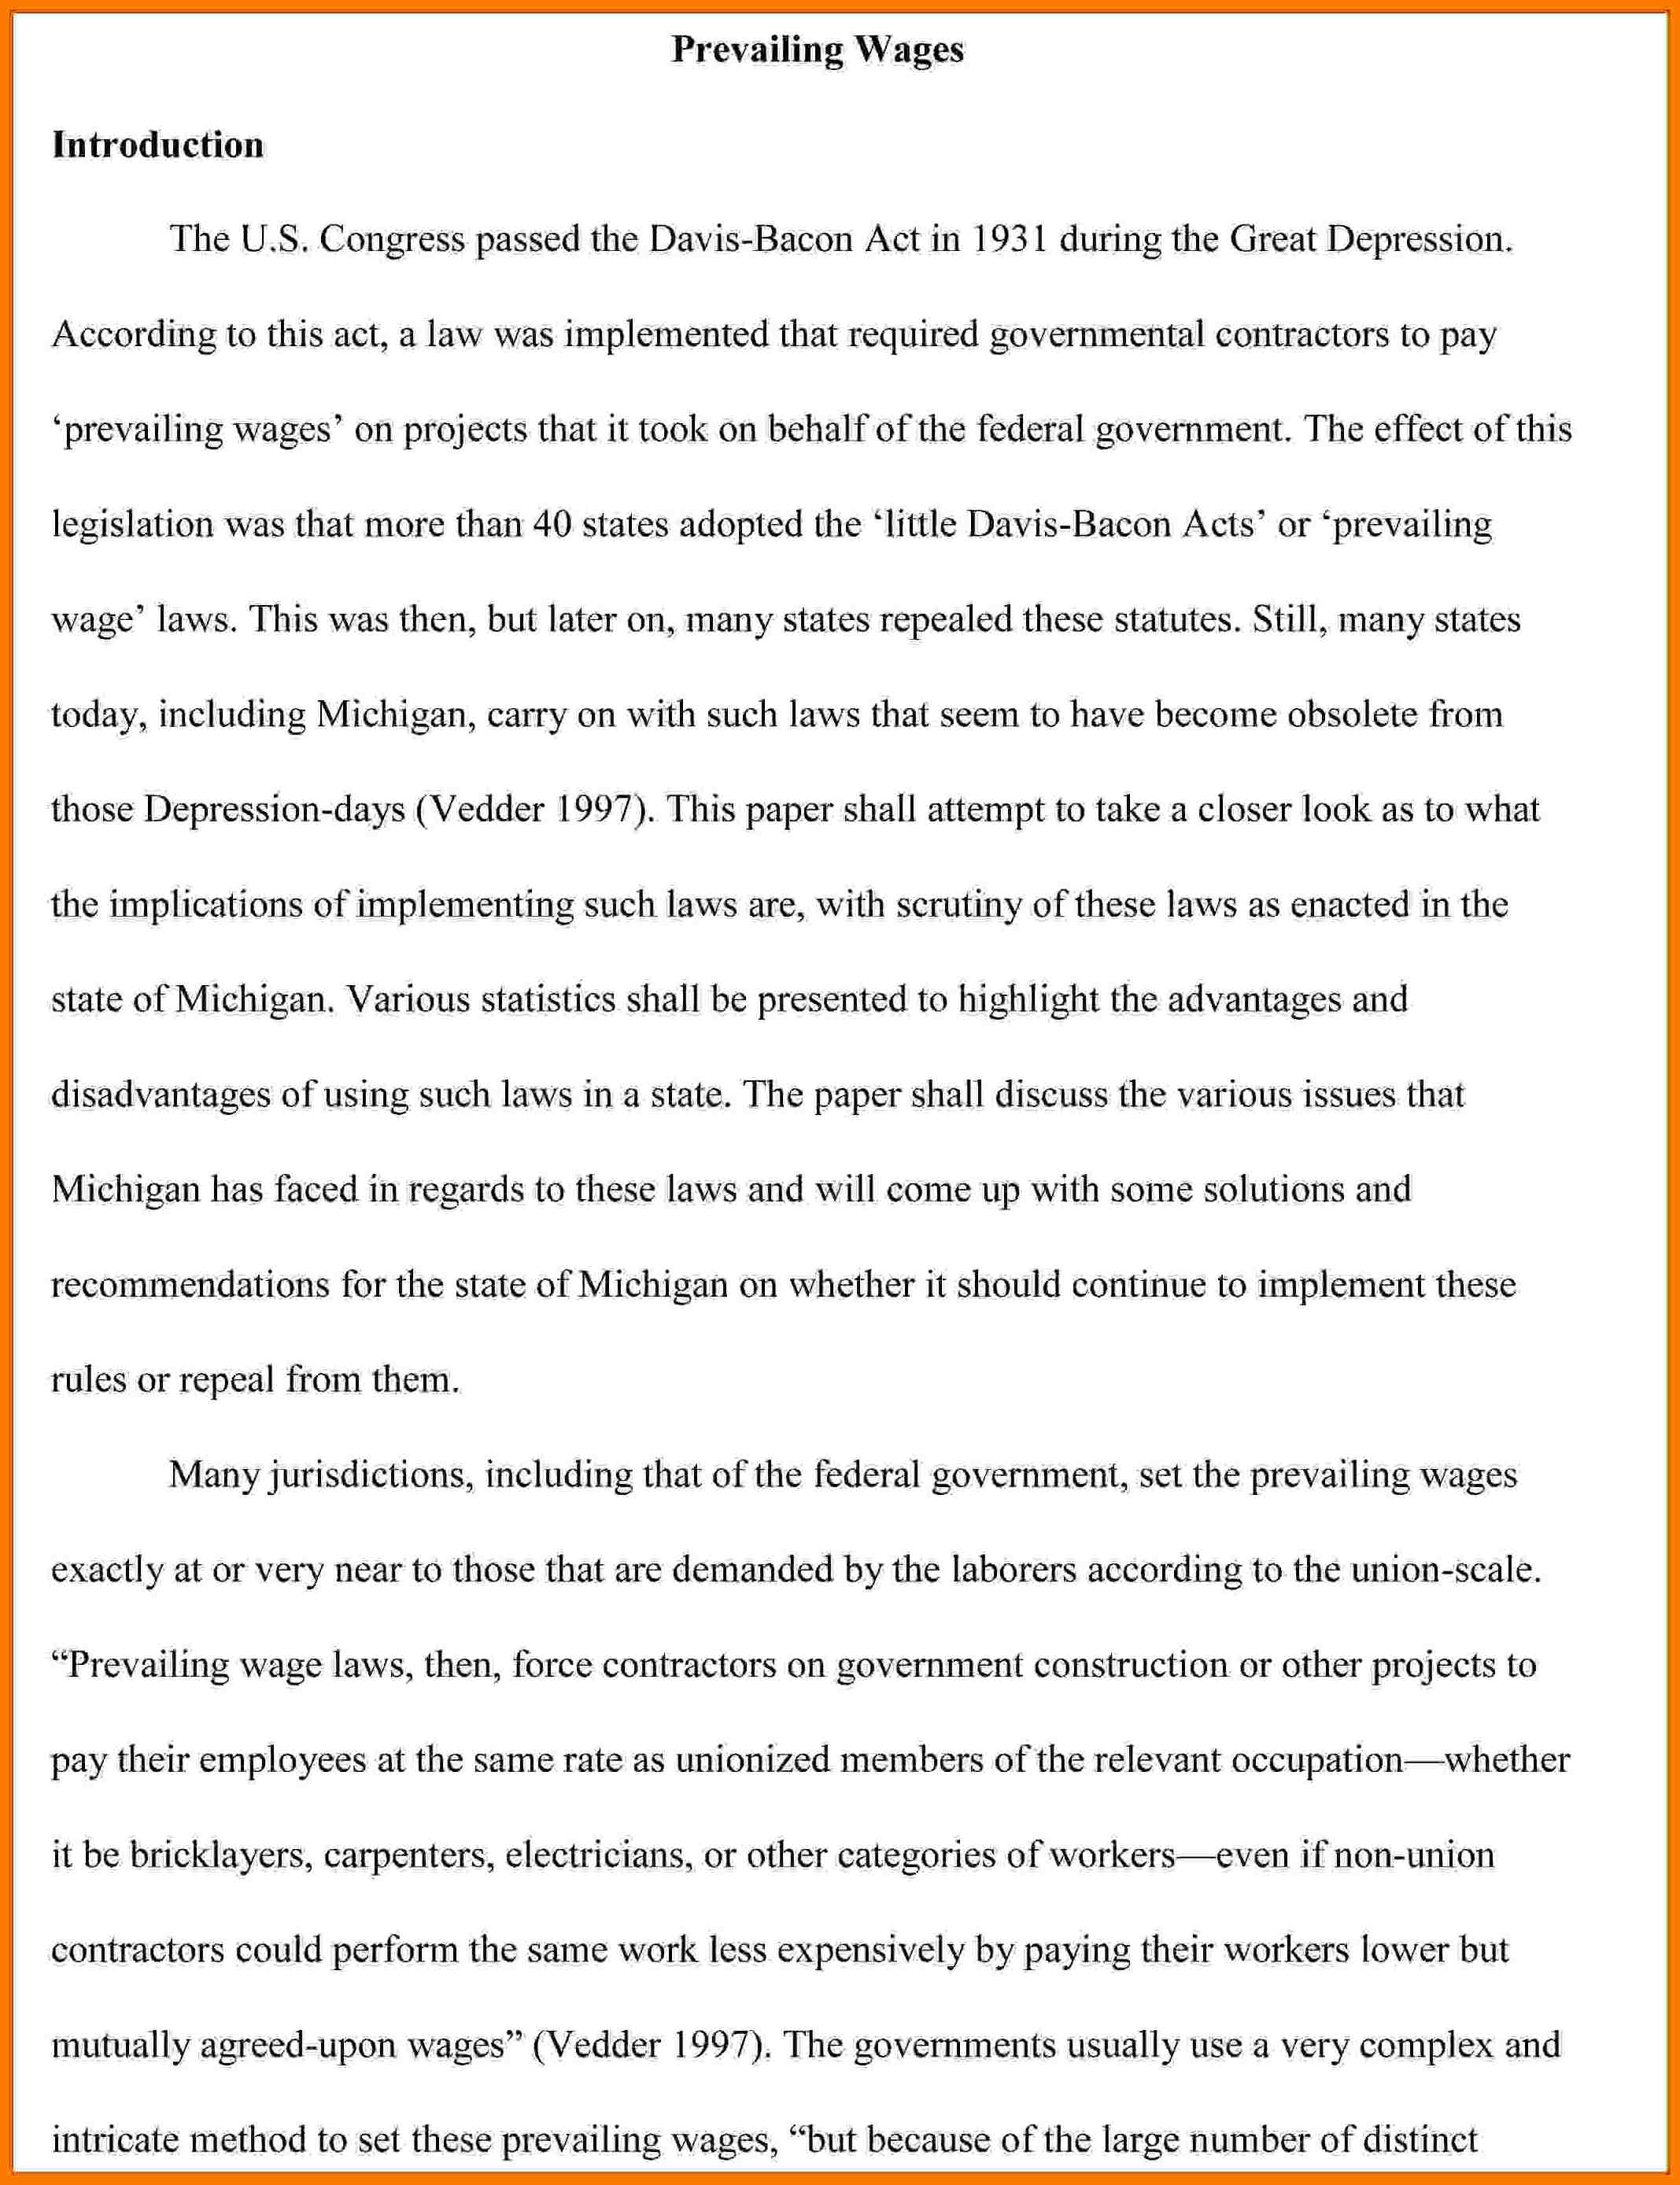 003 Collection Of Solutions Introduction Apa Paper Great Research To Frightening Example A Pdf Full